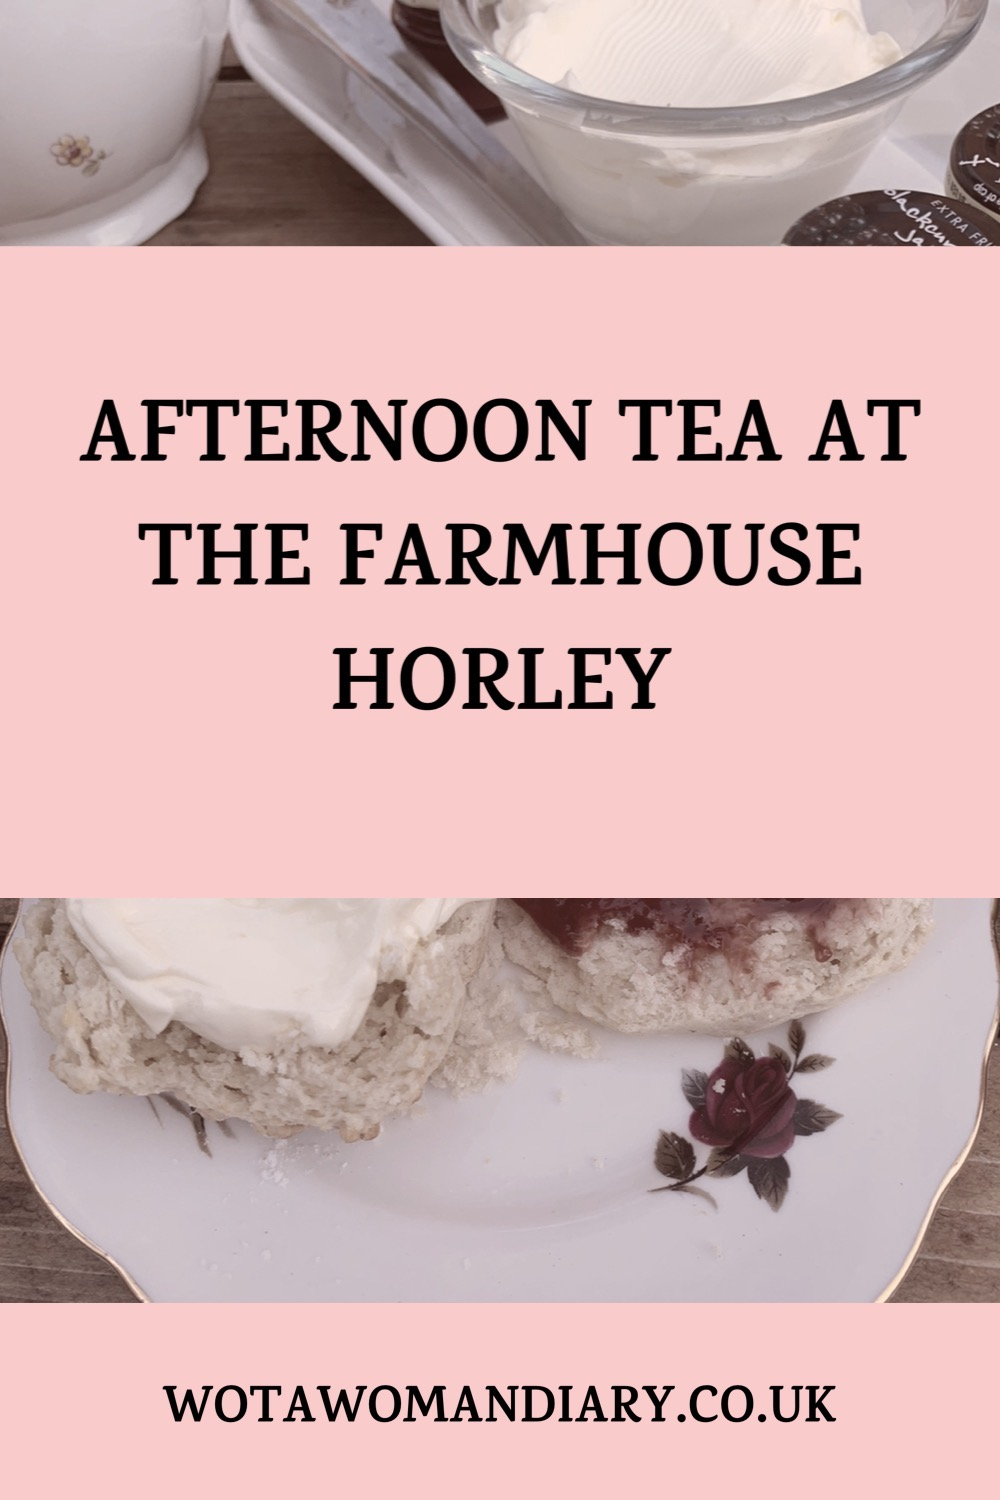 Text image in bold font reads afternoon tea at the farmhouse horley with a background image of a scone open with jam on one side and cream on the other